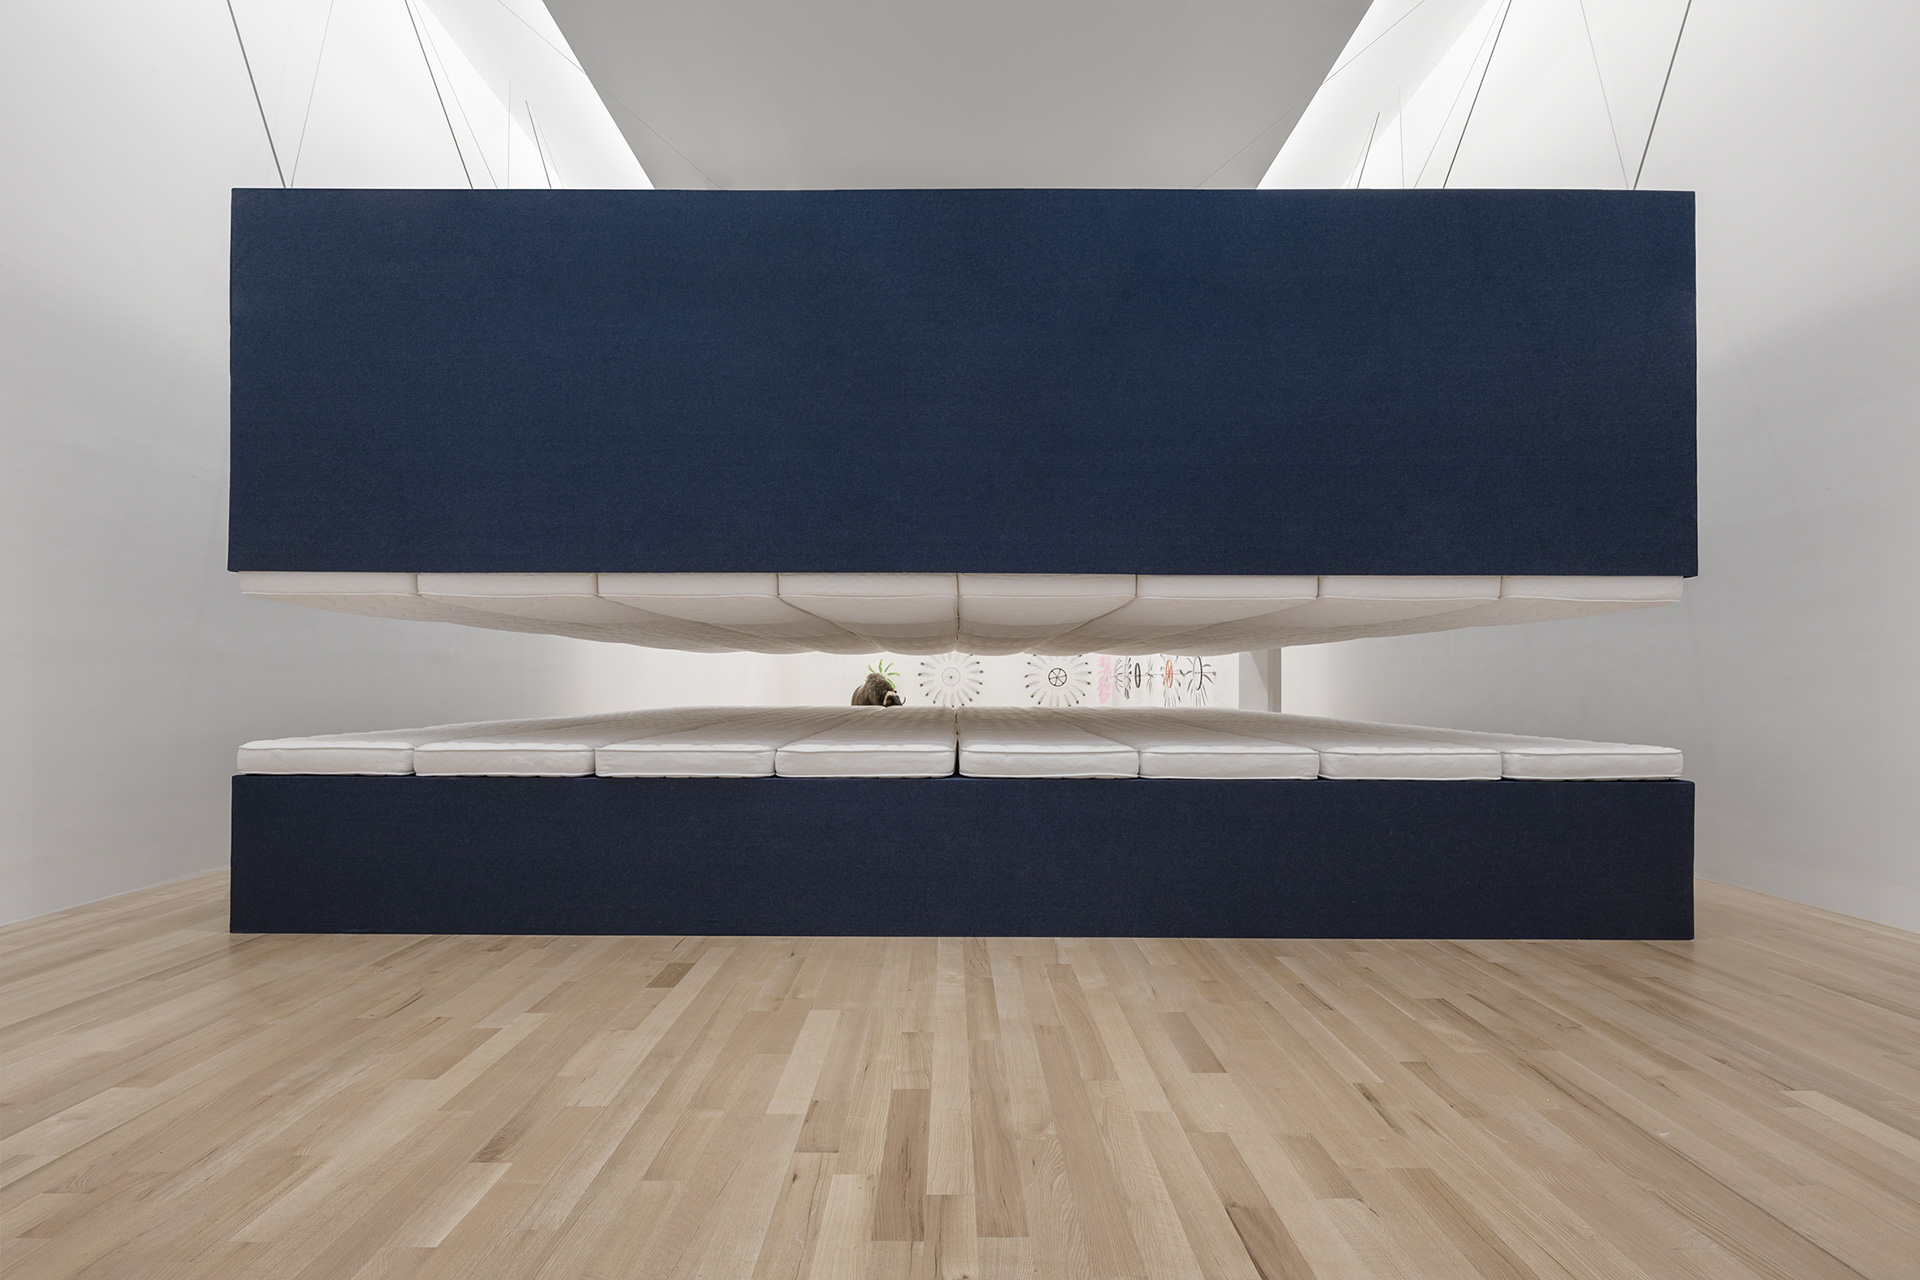 Paola Pivi. World Record, 2018, mattresses, wood, steel, denim, 398.8 × 774.7 × 955 cm| Paola Pivi. World Record| STIR